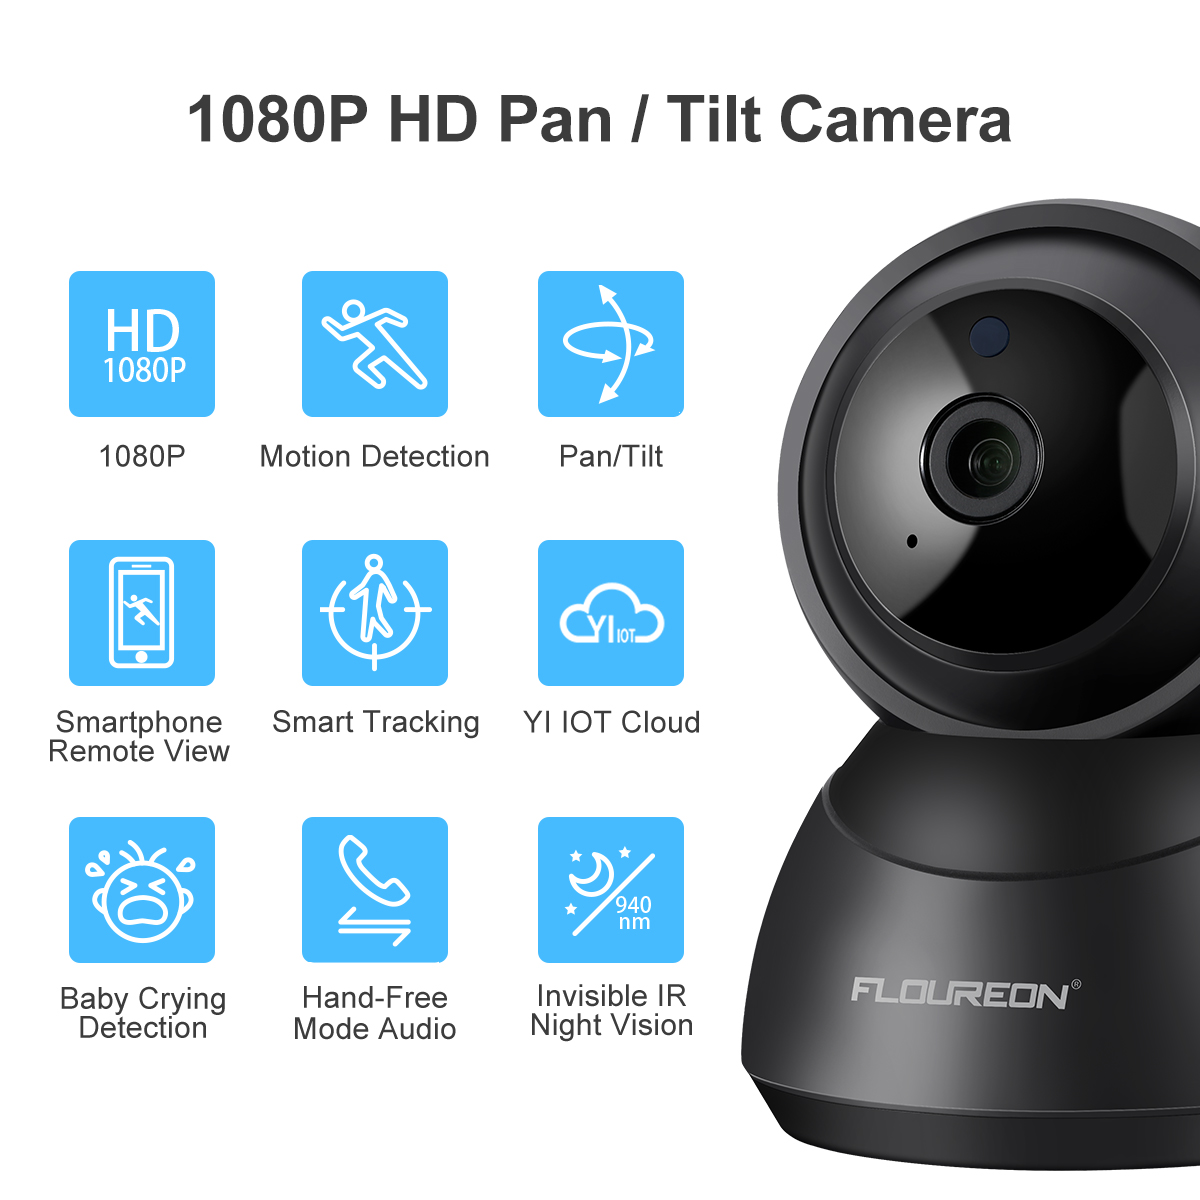 Details about YI Cloud 1080P HD Wireless IP Security Camera Pan/Tilt/Zoom  Night Vision Monitor